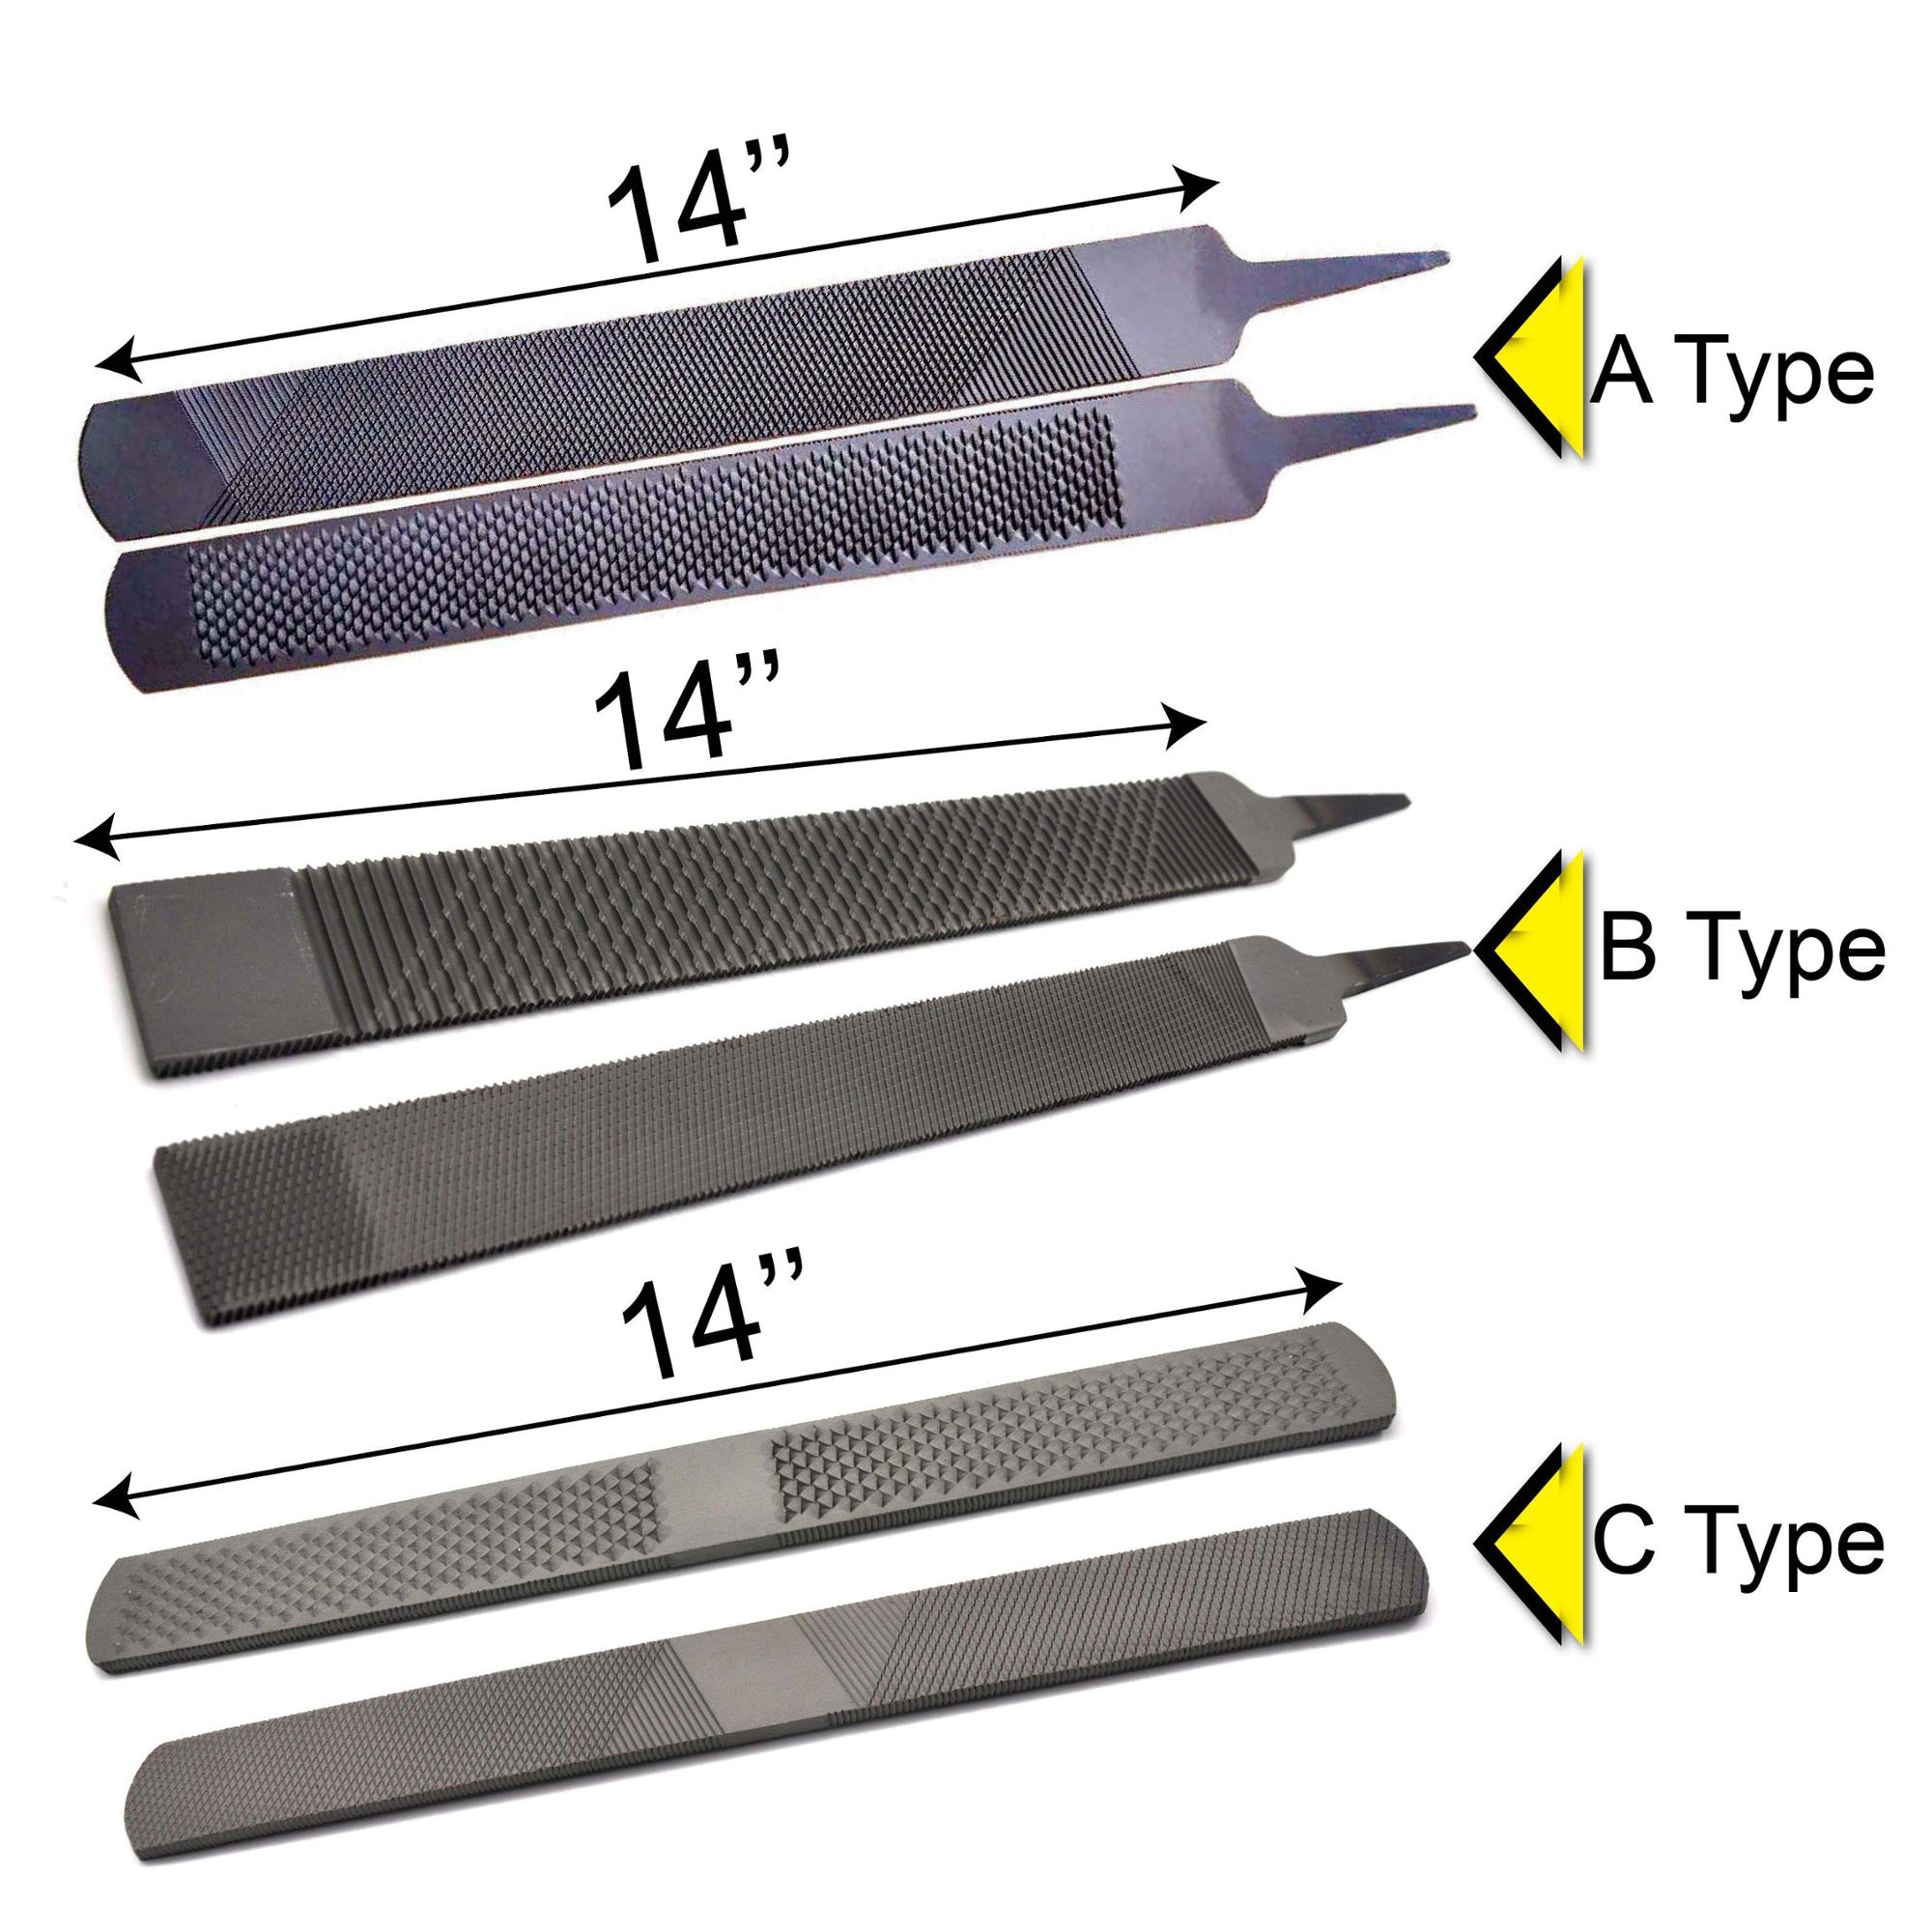 Hoof Rasp Coarse with Wooden Handle Farrier Tools High Quality